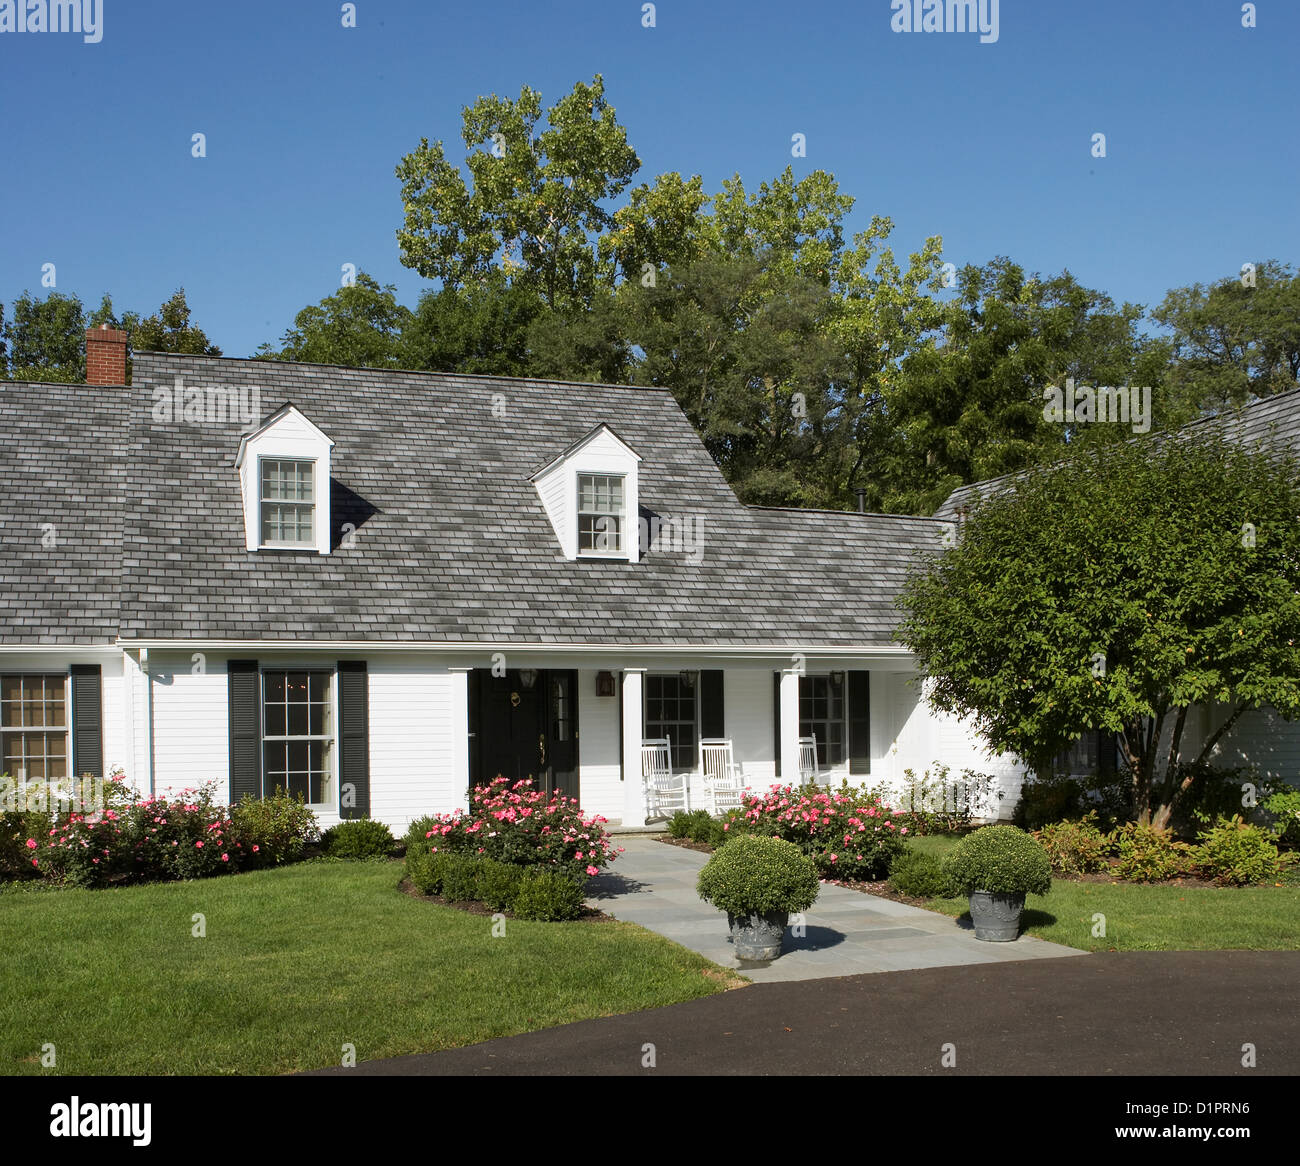 Front Porch Of Yellow House Stock Photo: Exteriors White Traditional Home With Black Shutters Front